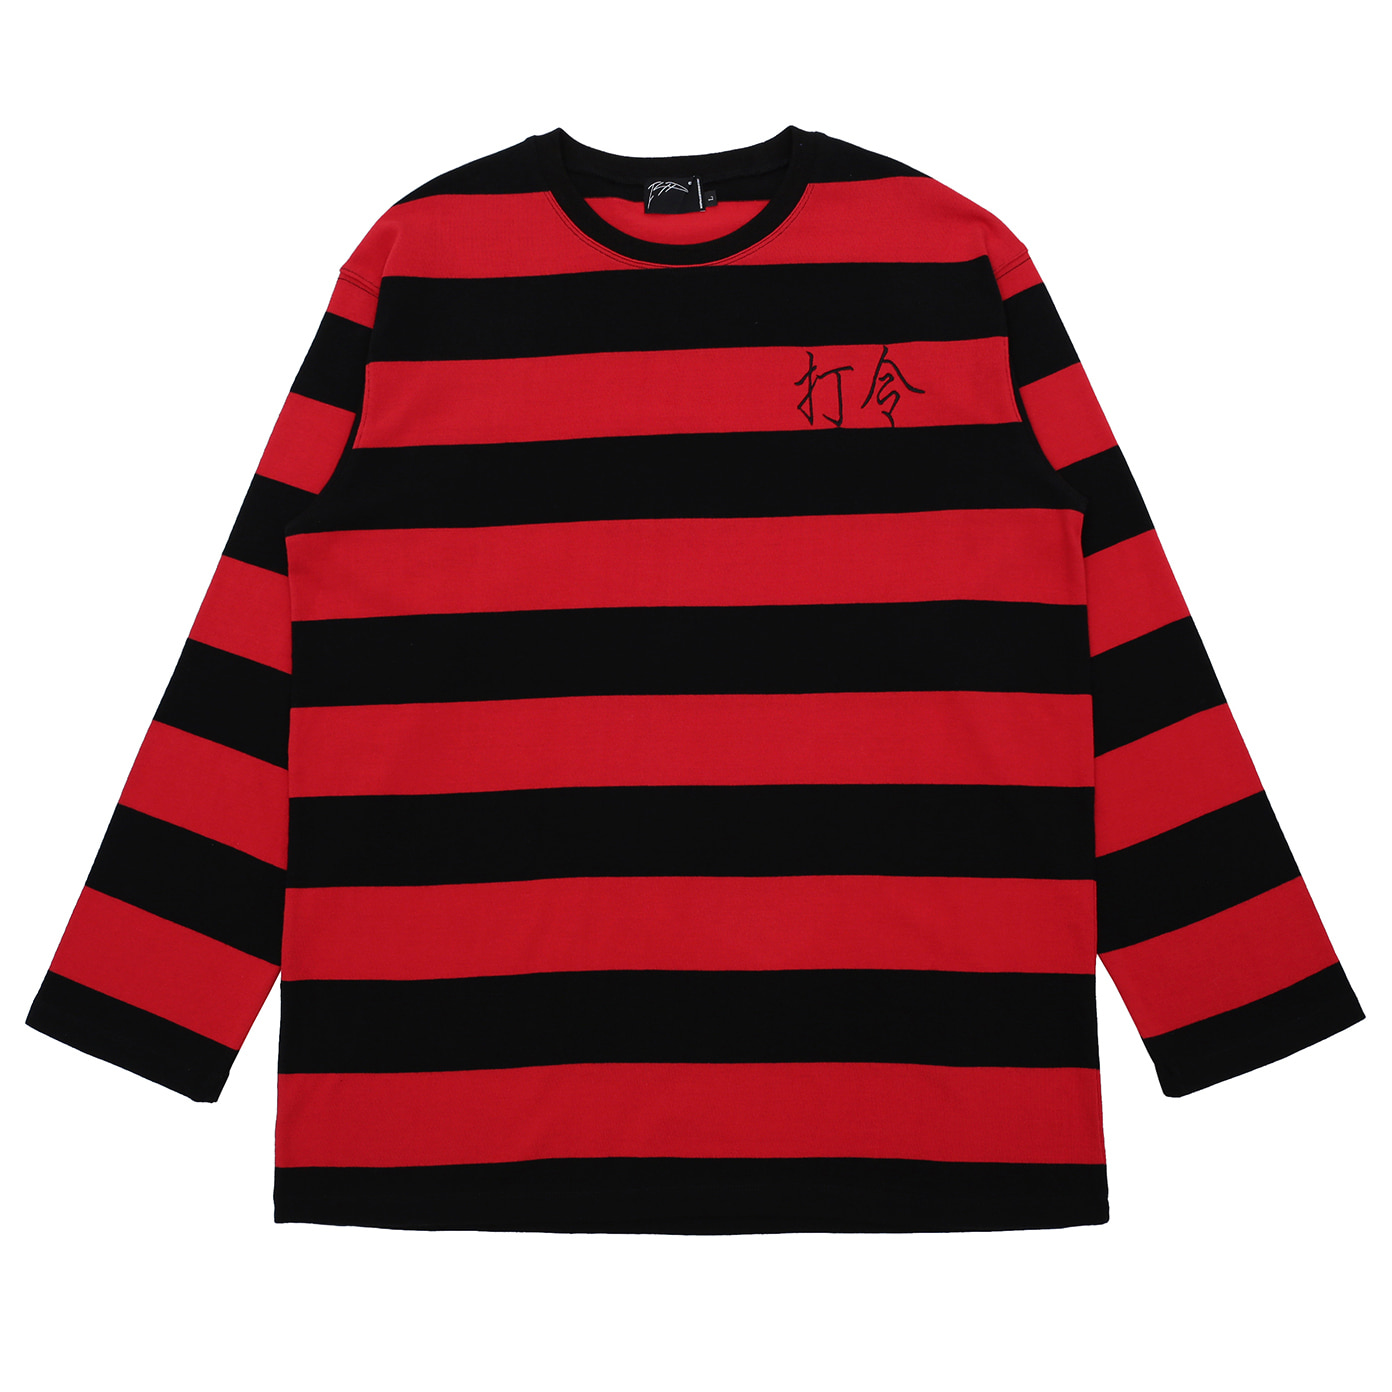 [I4P]Poong Ark Stripe T-shirt Red